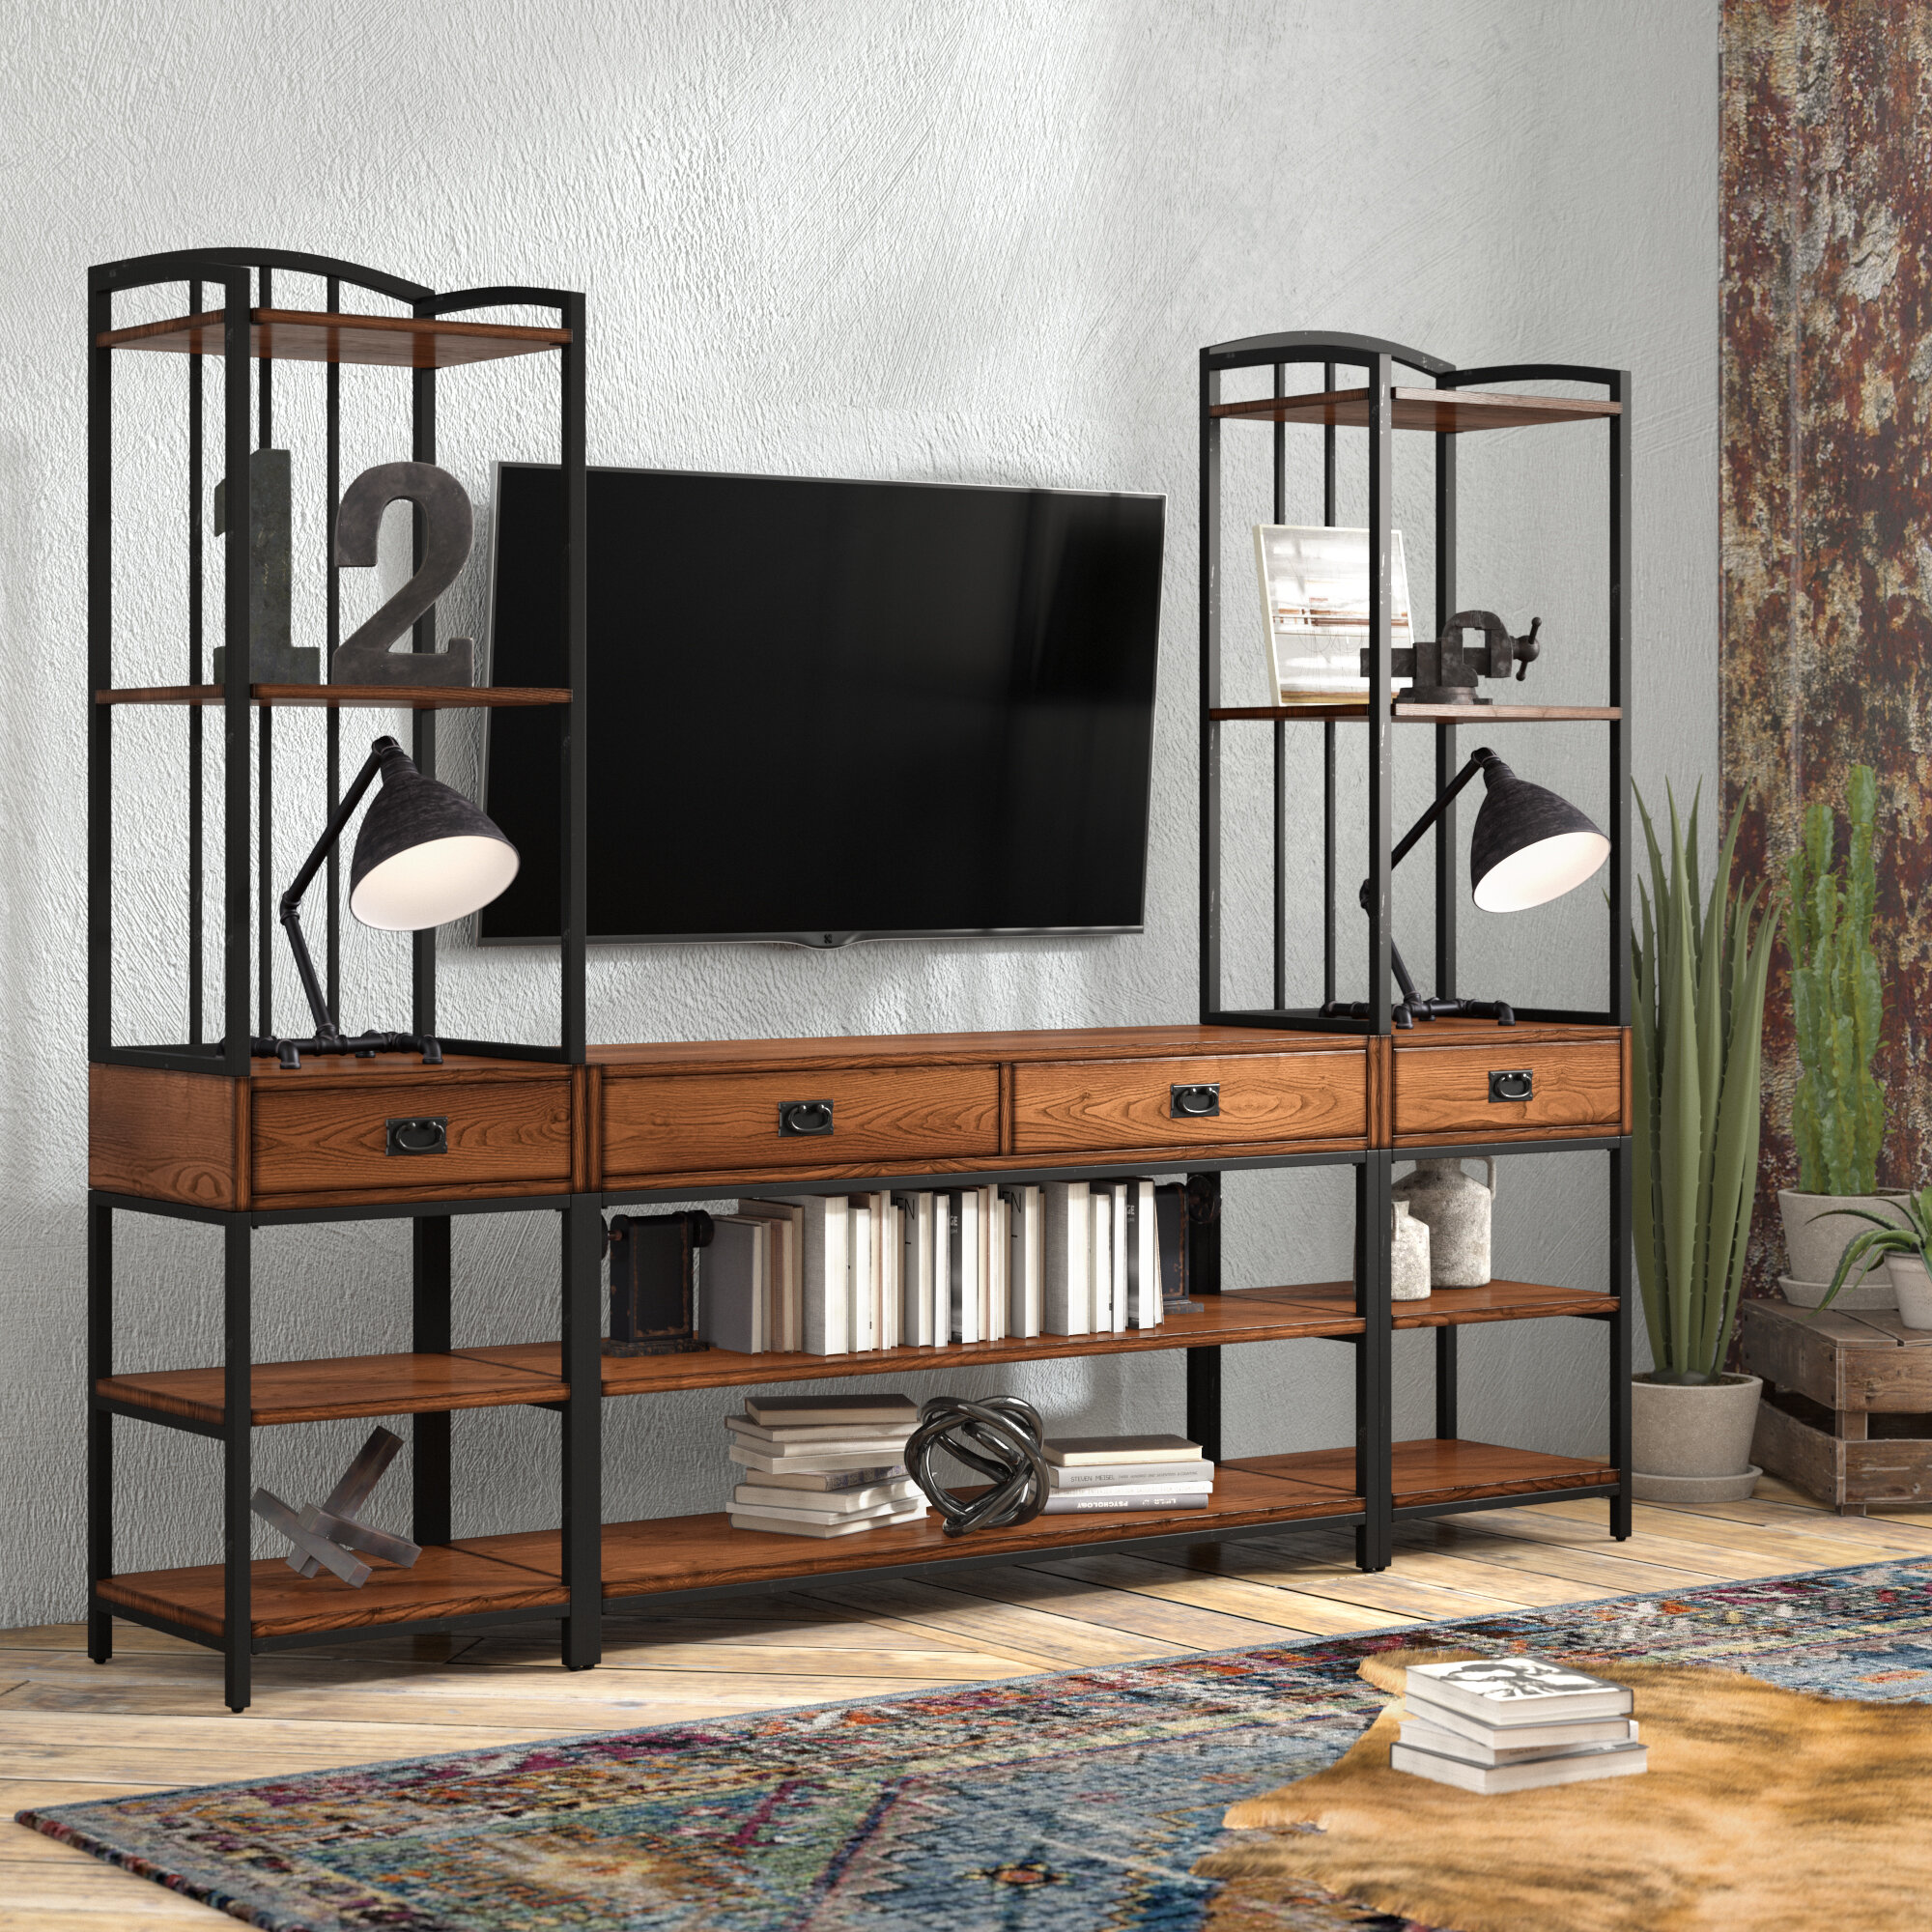 Wayfair Entertainment Centers You Ll Love In 2021